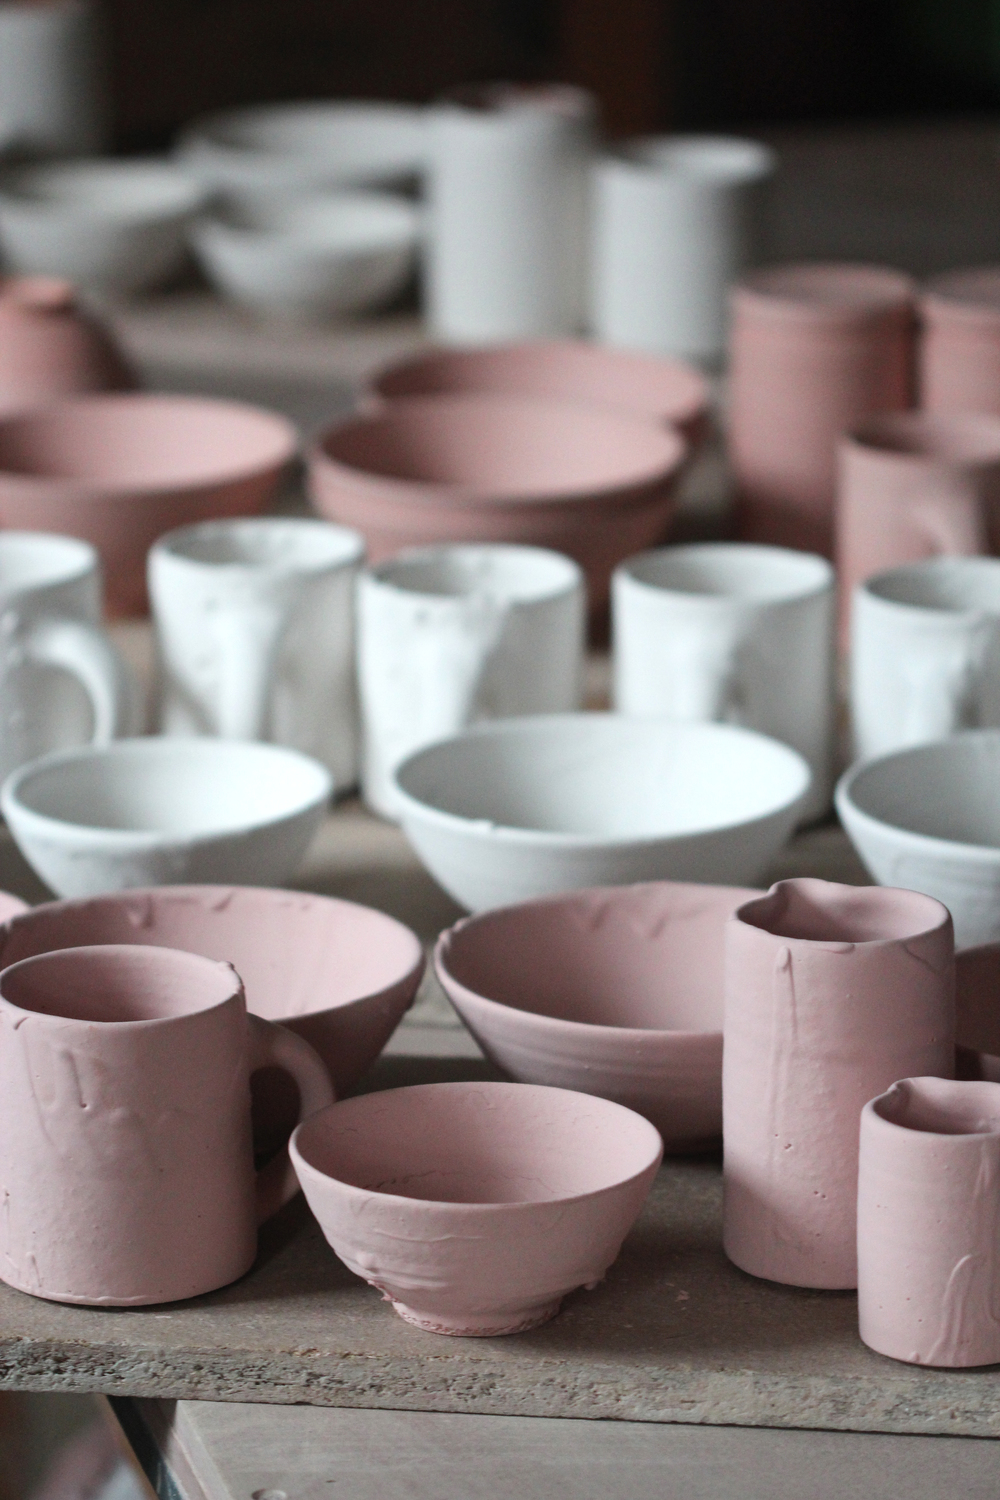 Freshly glazed pots.